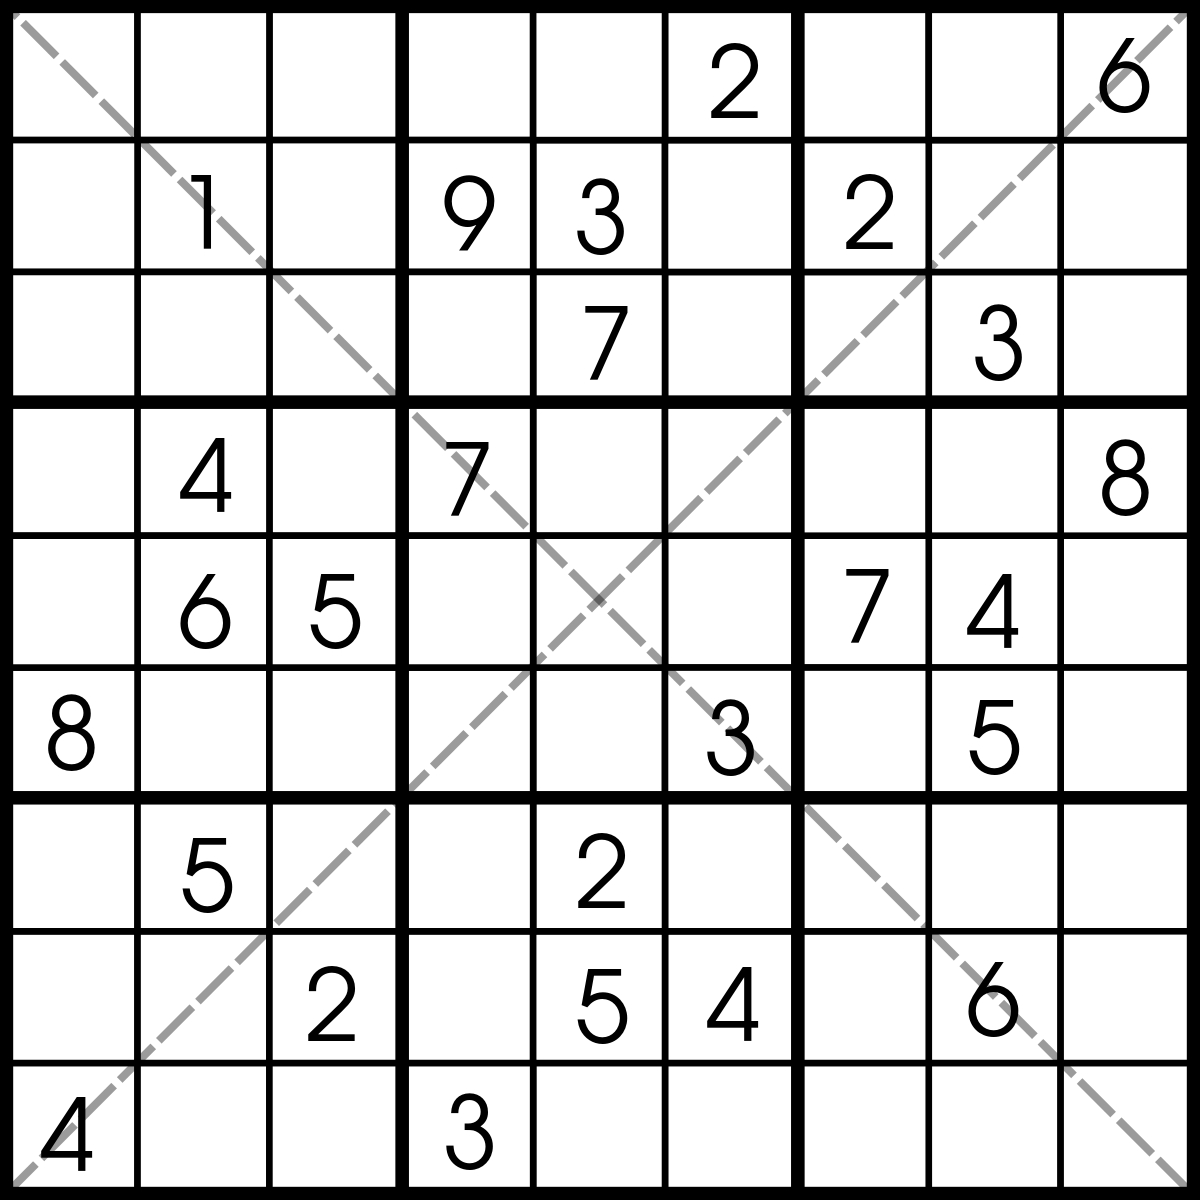 File:diagonal-Sudoku-By-Dyliu714-20080913.svg - Wikipedia